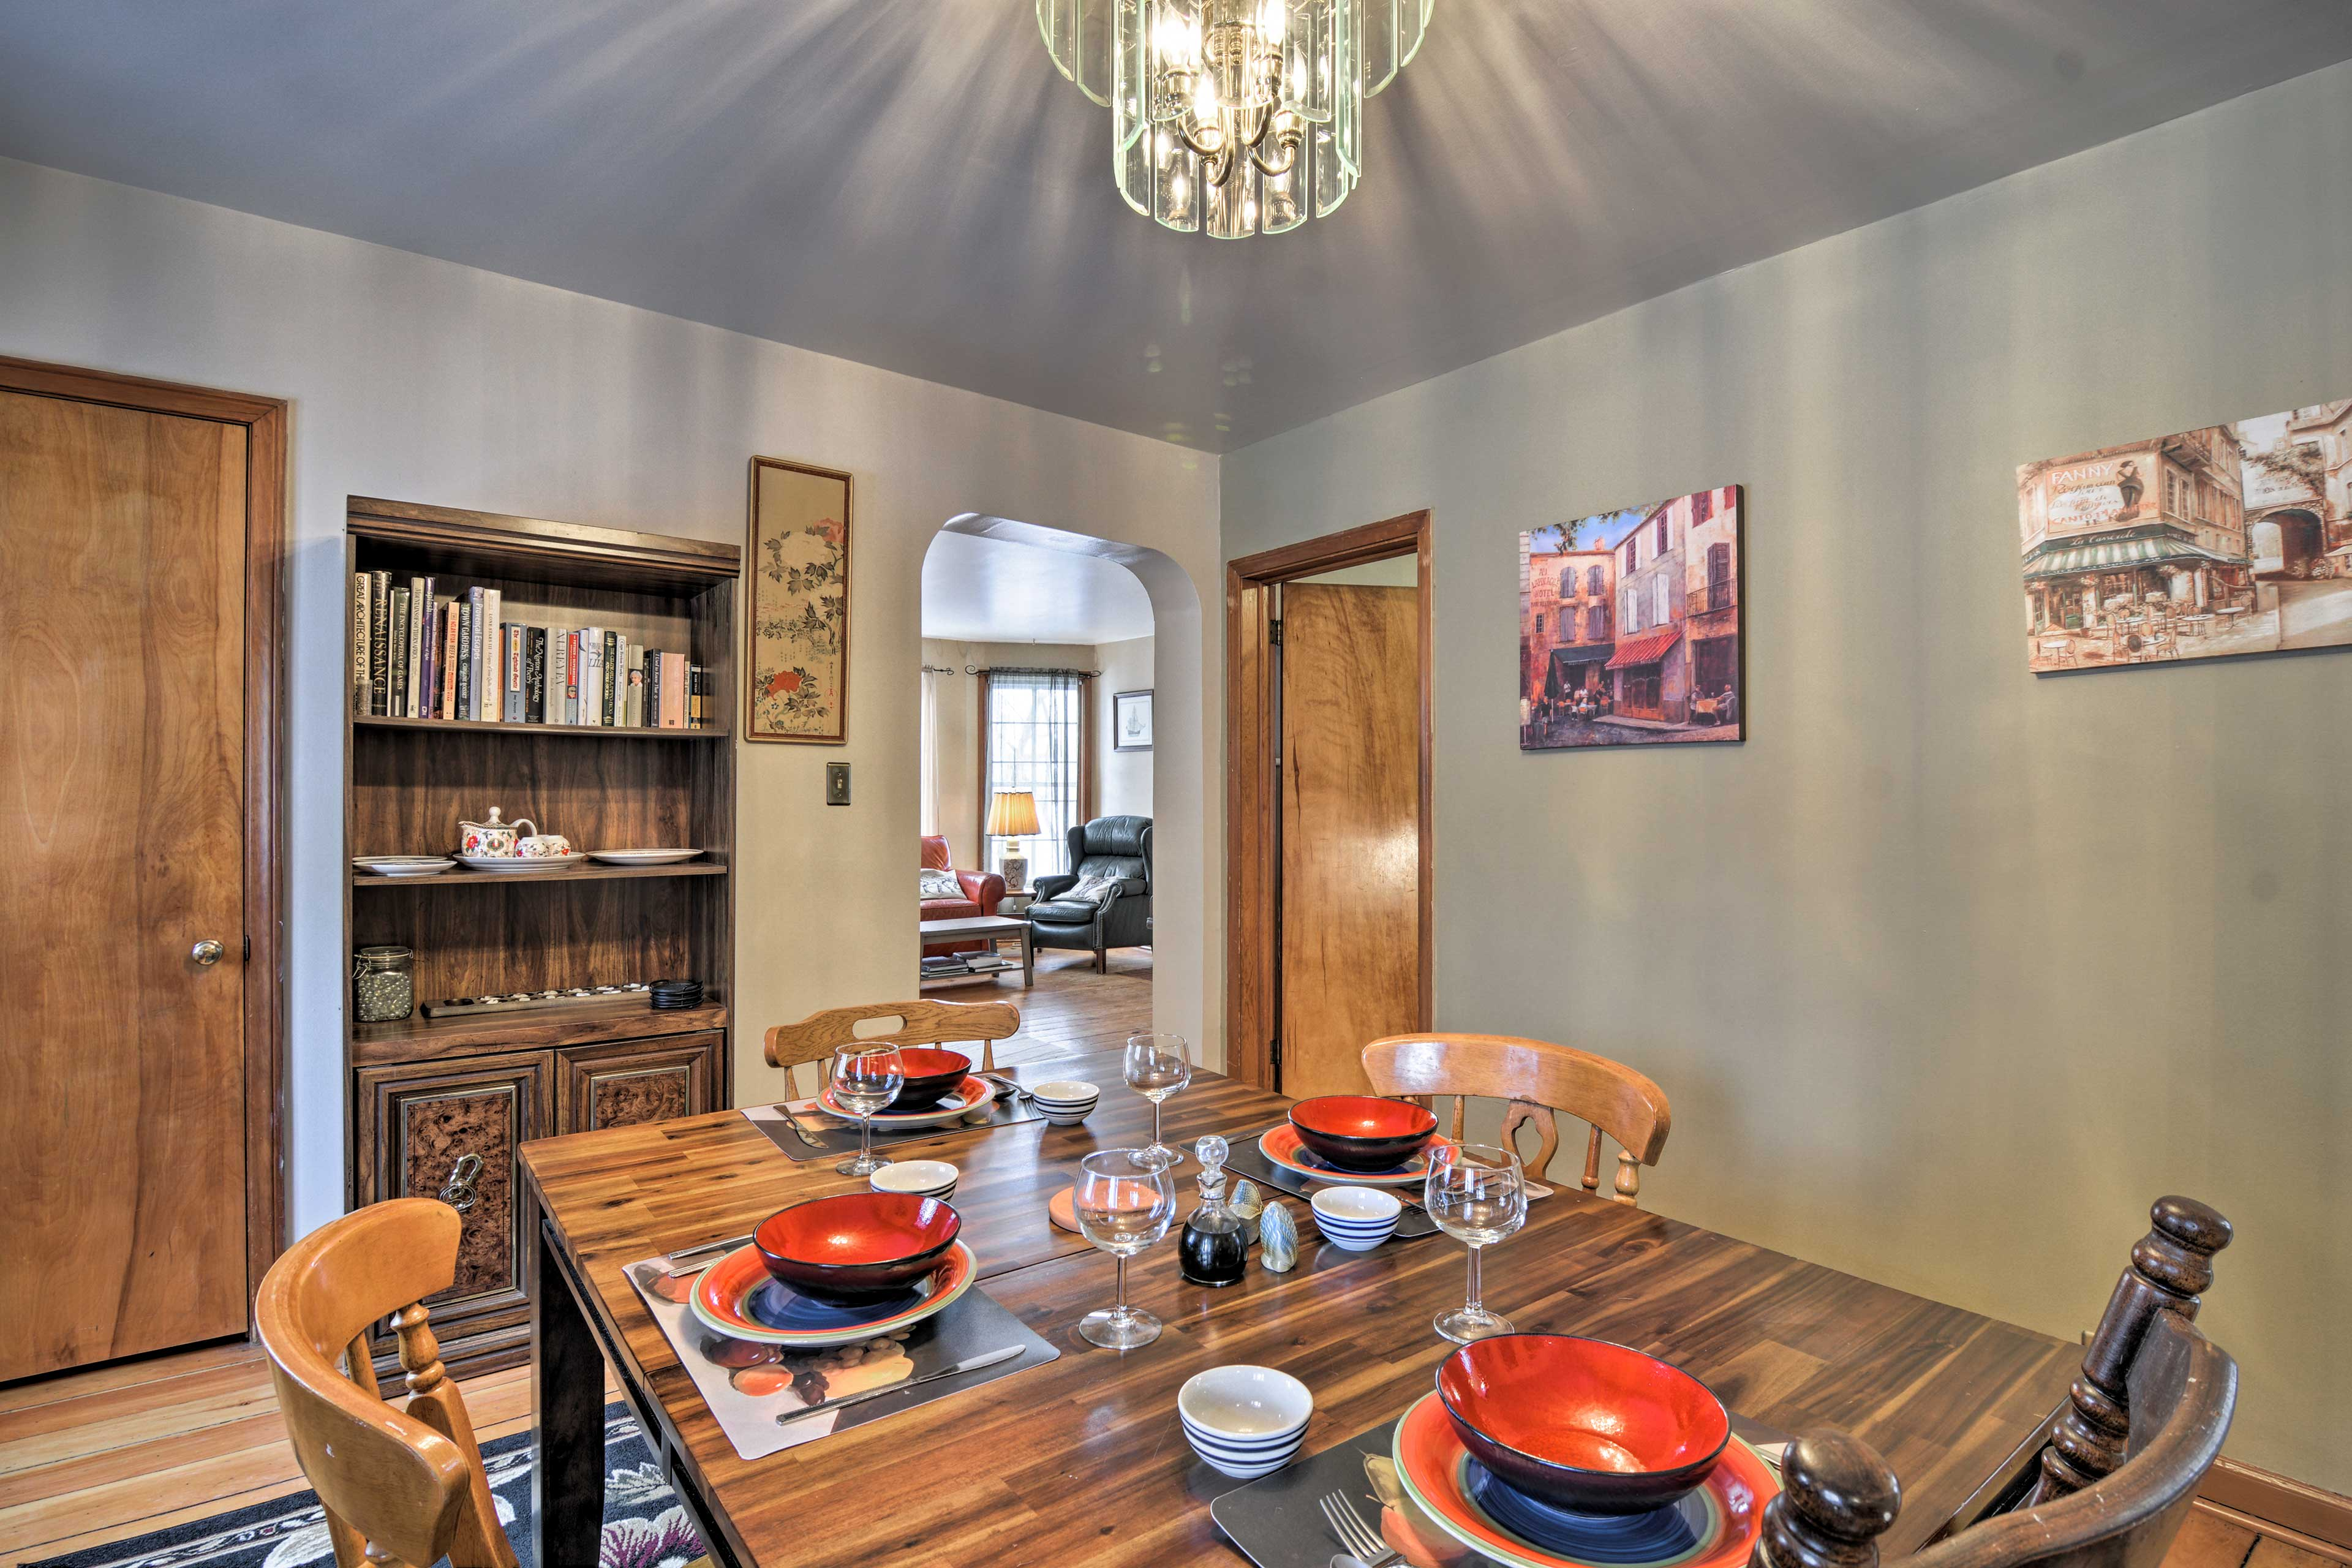 Enjoy home-cooked meals in the dining room.